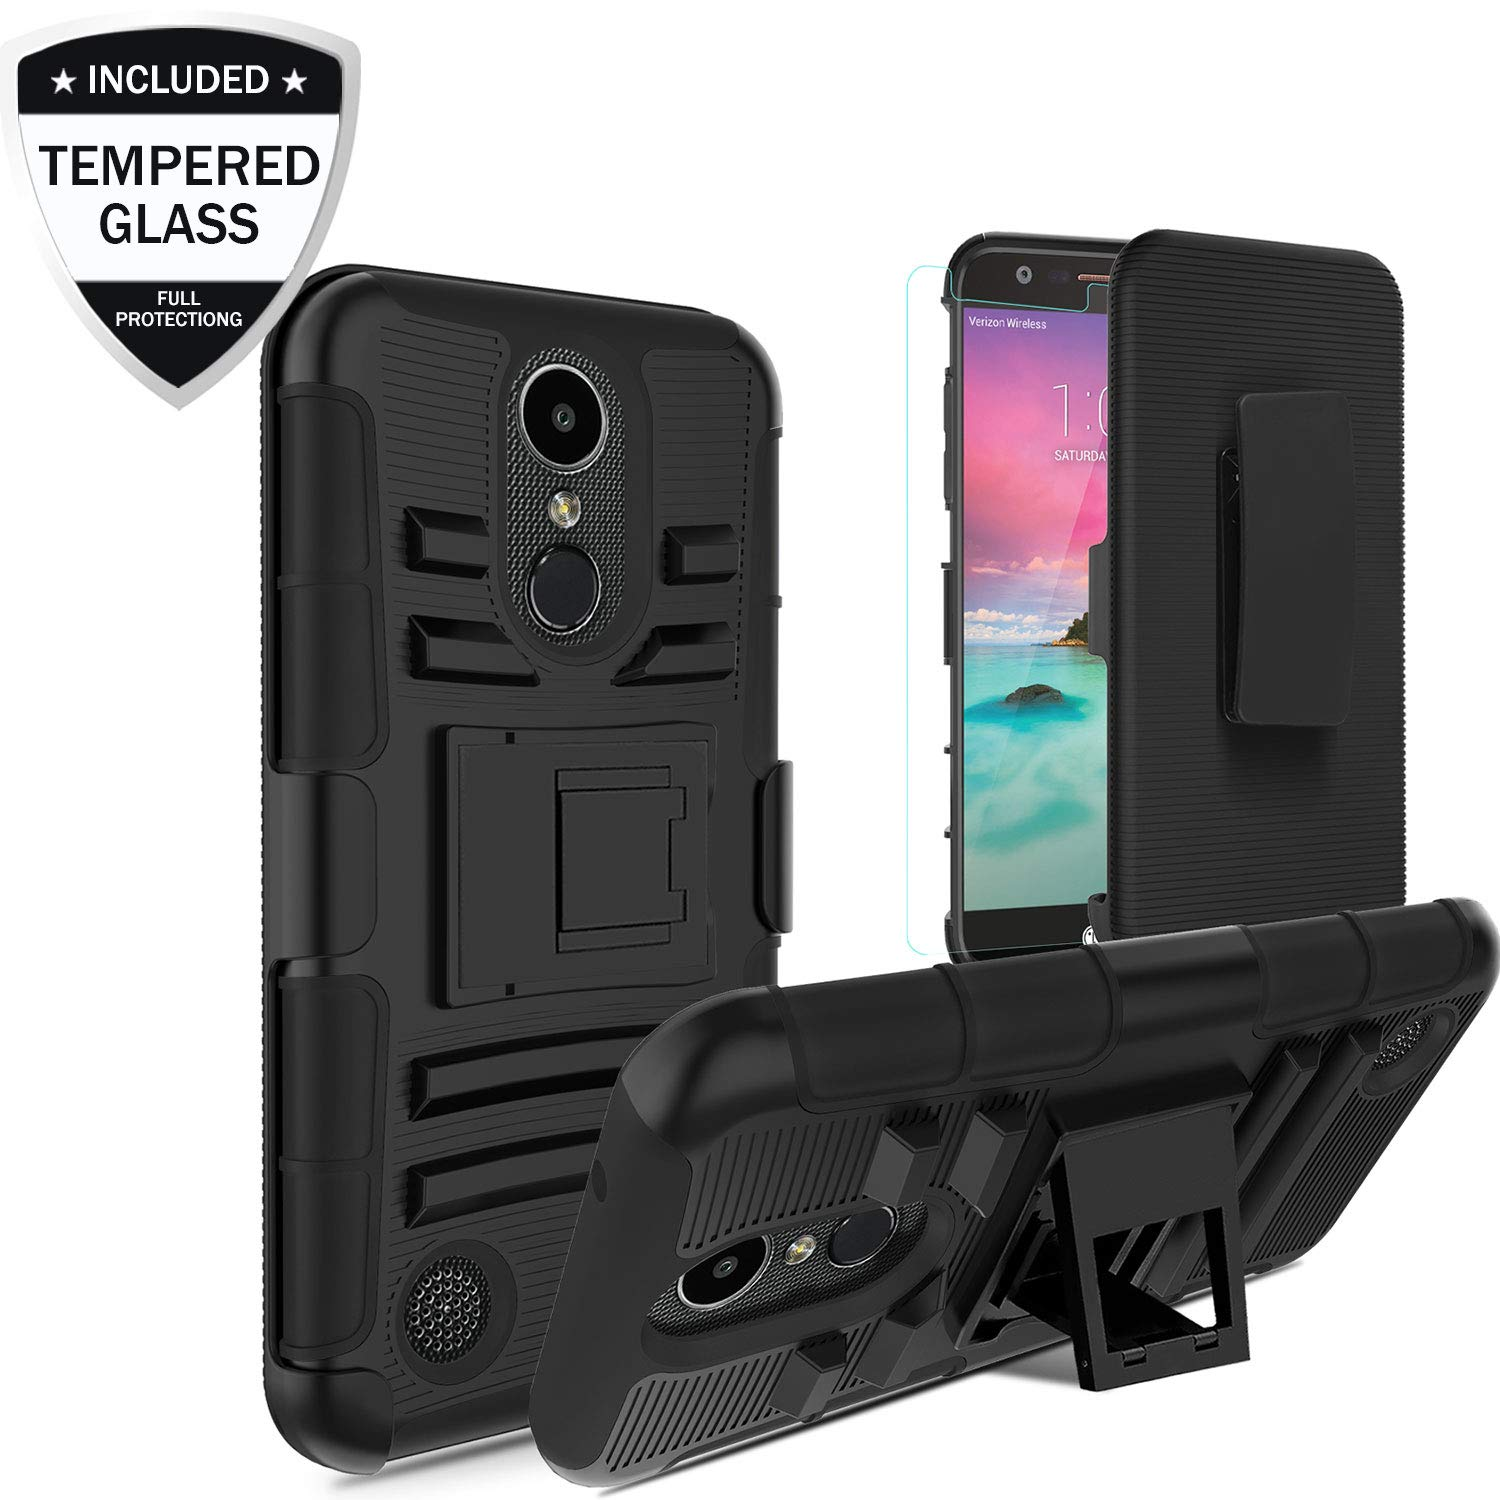 LG K20 Plus Case, LG K20 V/Grace LTE/Harmony/K10 2017/LV5/K20 Case w/Tempered Glass Screen Protector, Heavy Duty Shockproof Protective Hybrid Case Cover w/Swivel Belt Clip Holster Kickstand, Black